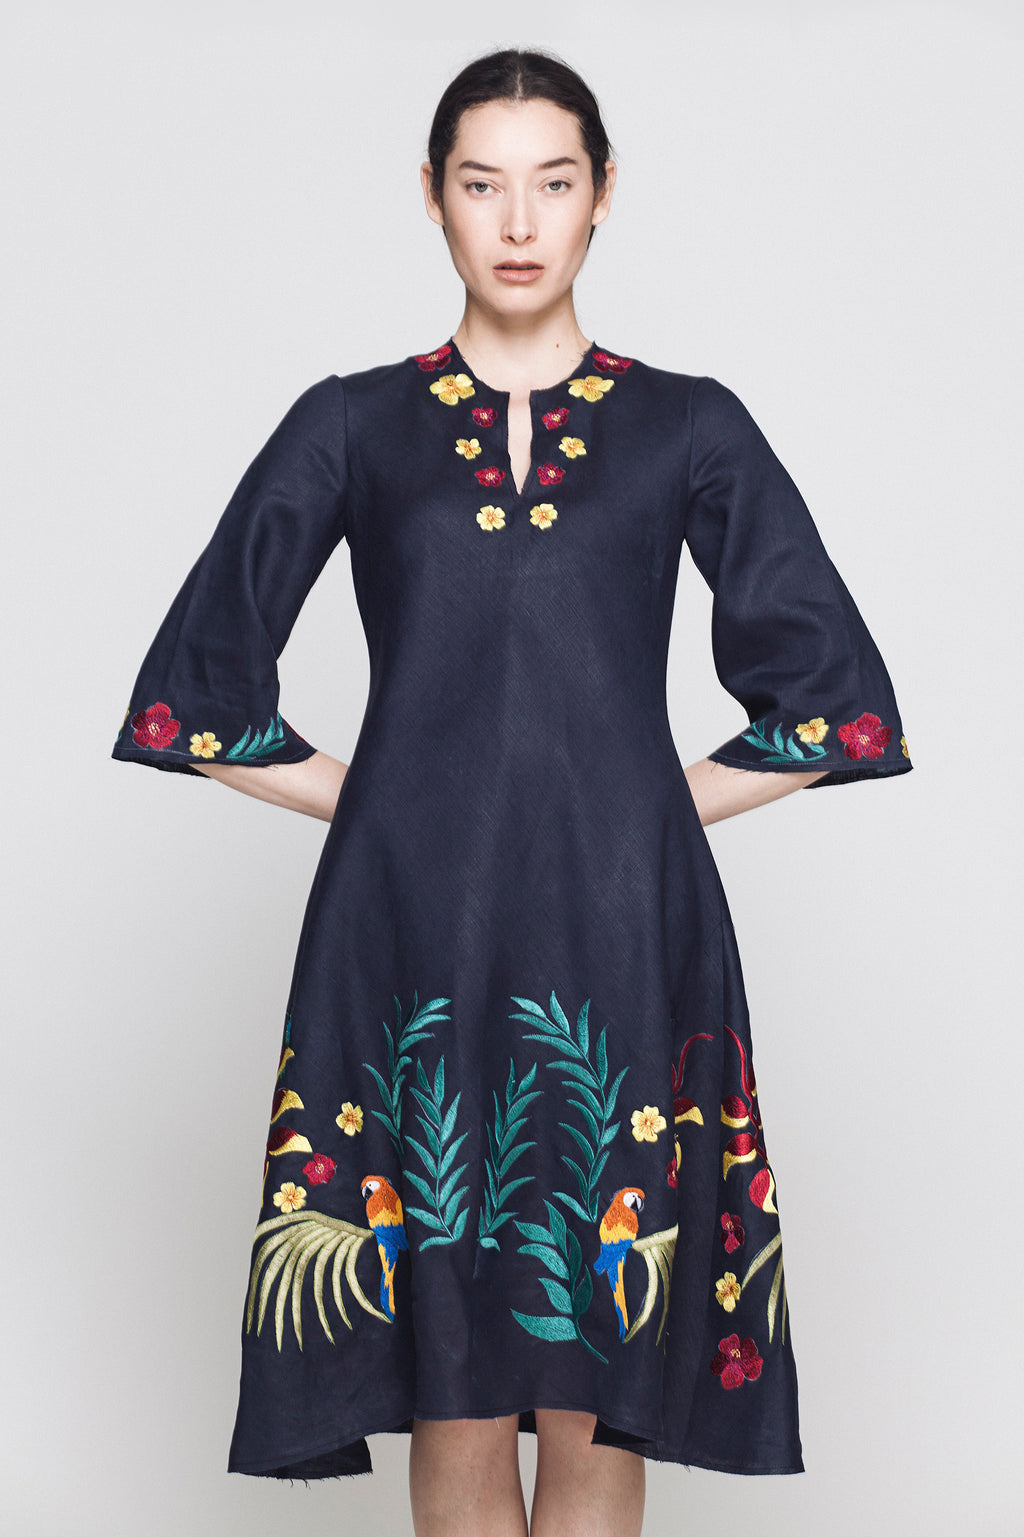 Jacqueline Hand Embroidered Shift Dress